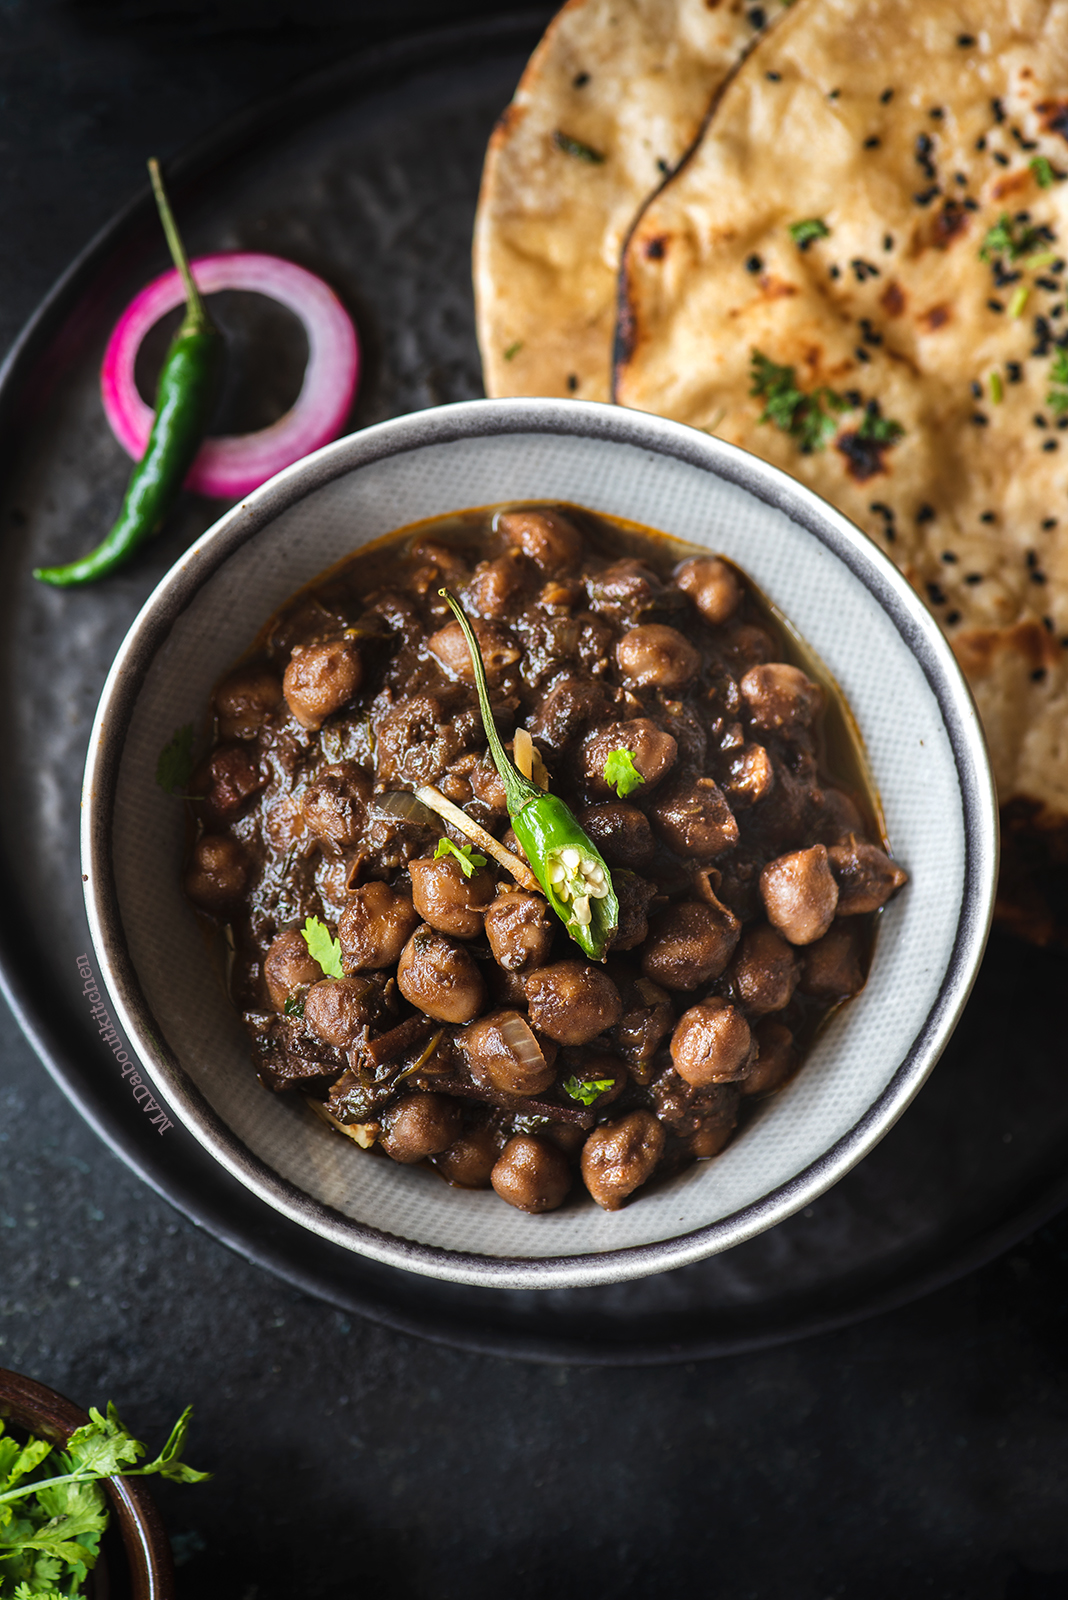 Chole is slow cooked chickpea curry in  lots of spices to make a creamy, rich curry which is served with Kulcha, Tandoori roti or Batura.